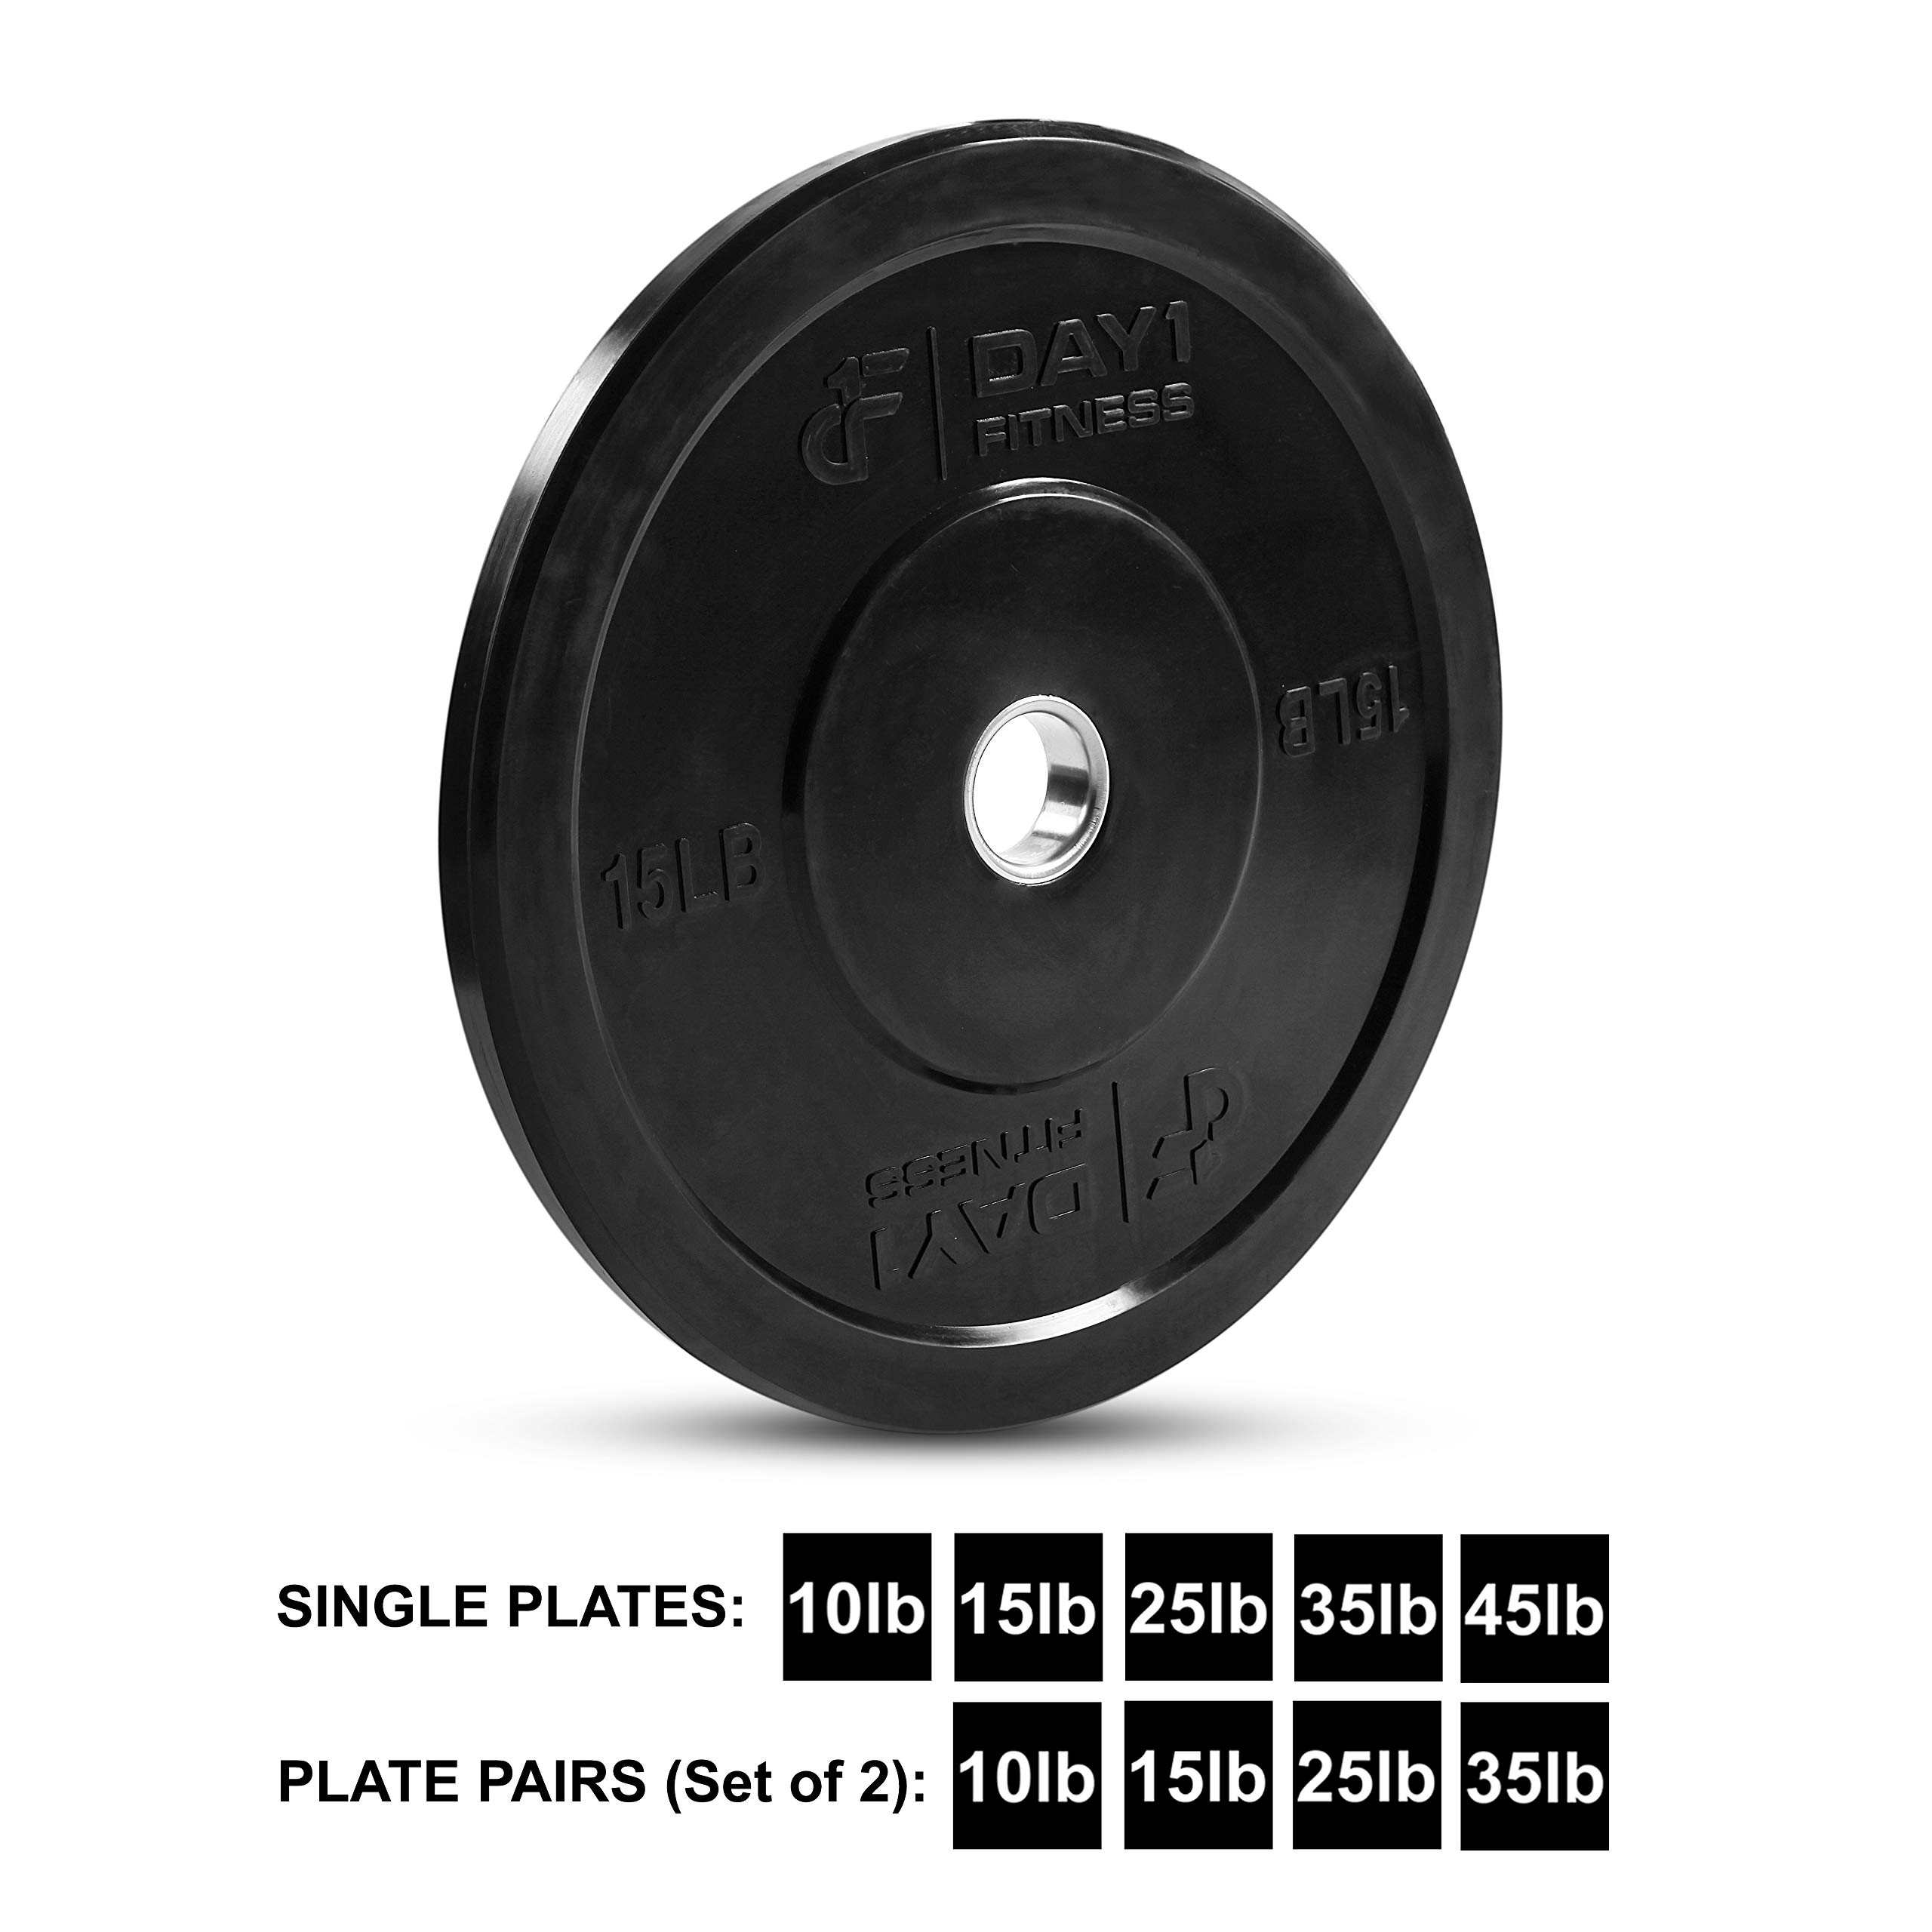 "Day 1 Fitness Olympic Bumper Weighted Plate 2"" for Barbells, Bars – 15 lb Single Plate - Shock-Absorbing, Minimal Bounce Steel Weights with Bumpers for Lifting, Strength Training, and Working Out by Day 1 Fitness (Image #1)"